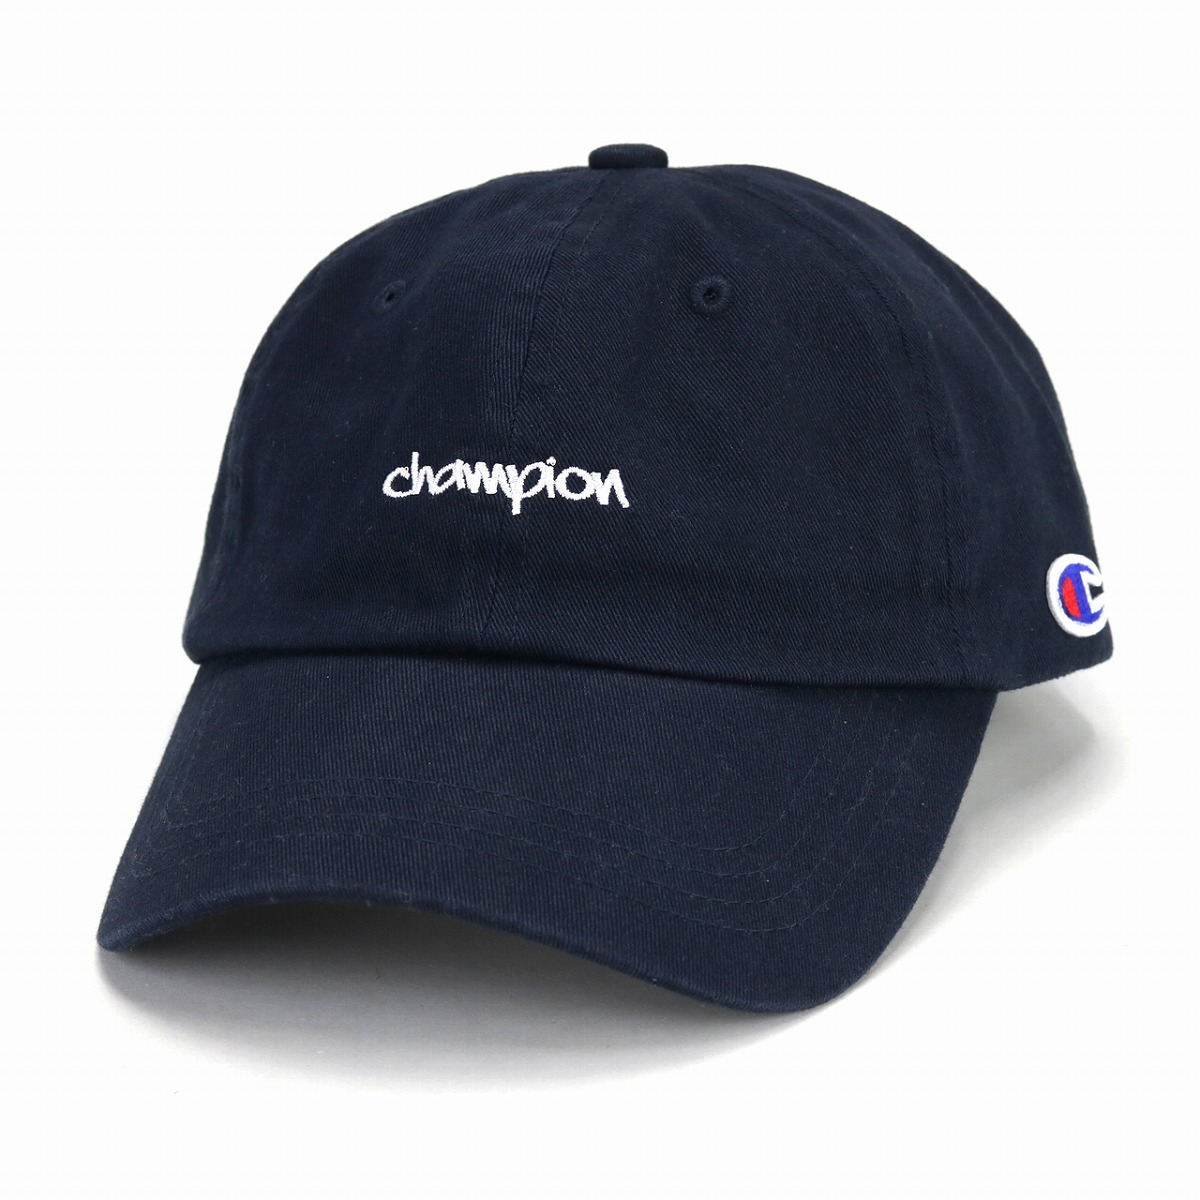 0f68830401b Champion hat cap men champion logo cap Lady s cotton oar season mini-logo  baseball cap sports brand popularity cap adjustable size   dark blue navy  ...